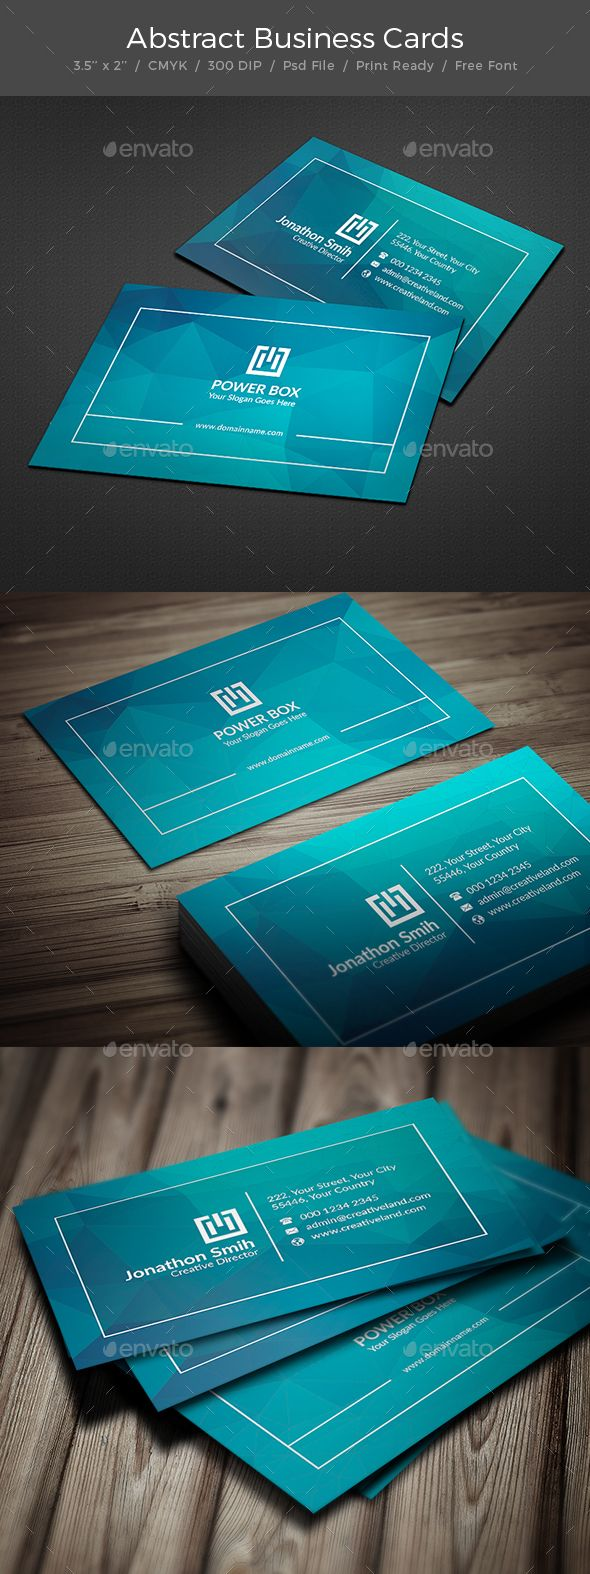 31 best business card images on pinterest business card design business card psd templatesprint friedricerecipe Choice Image